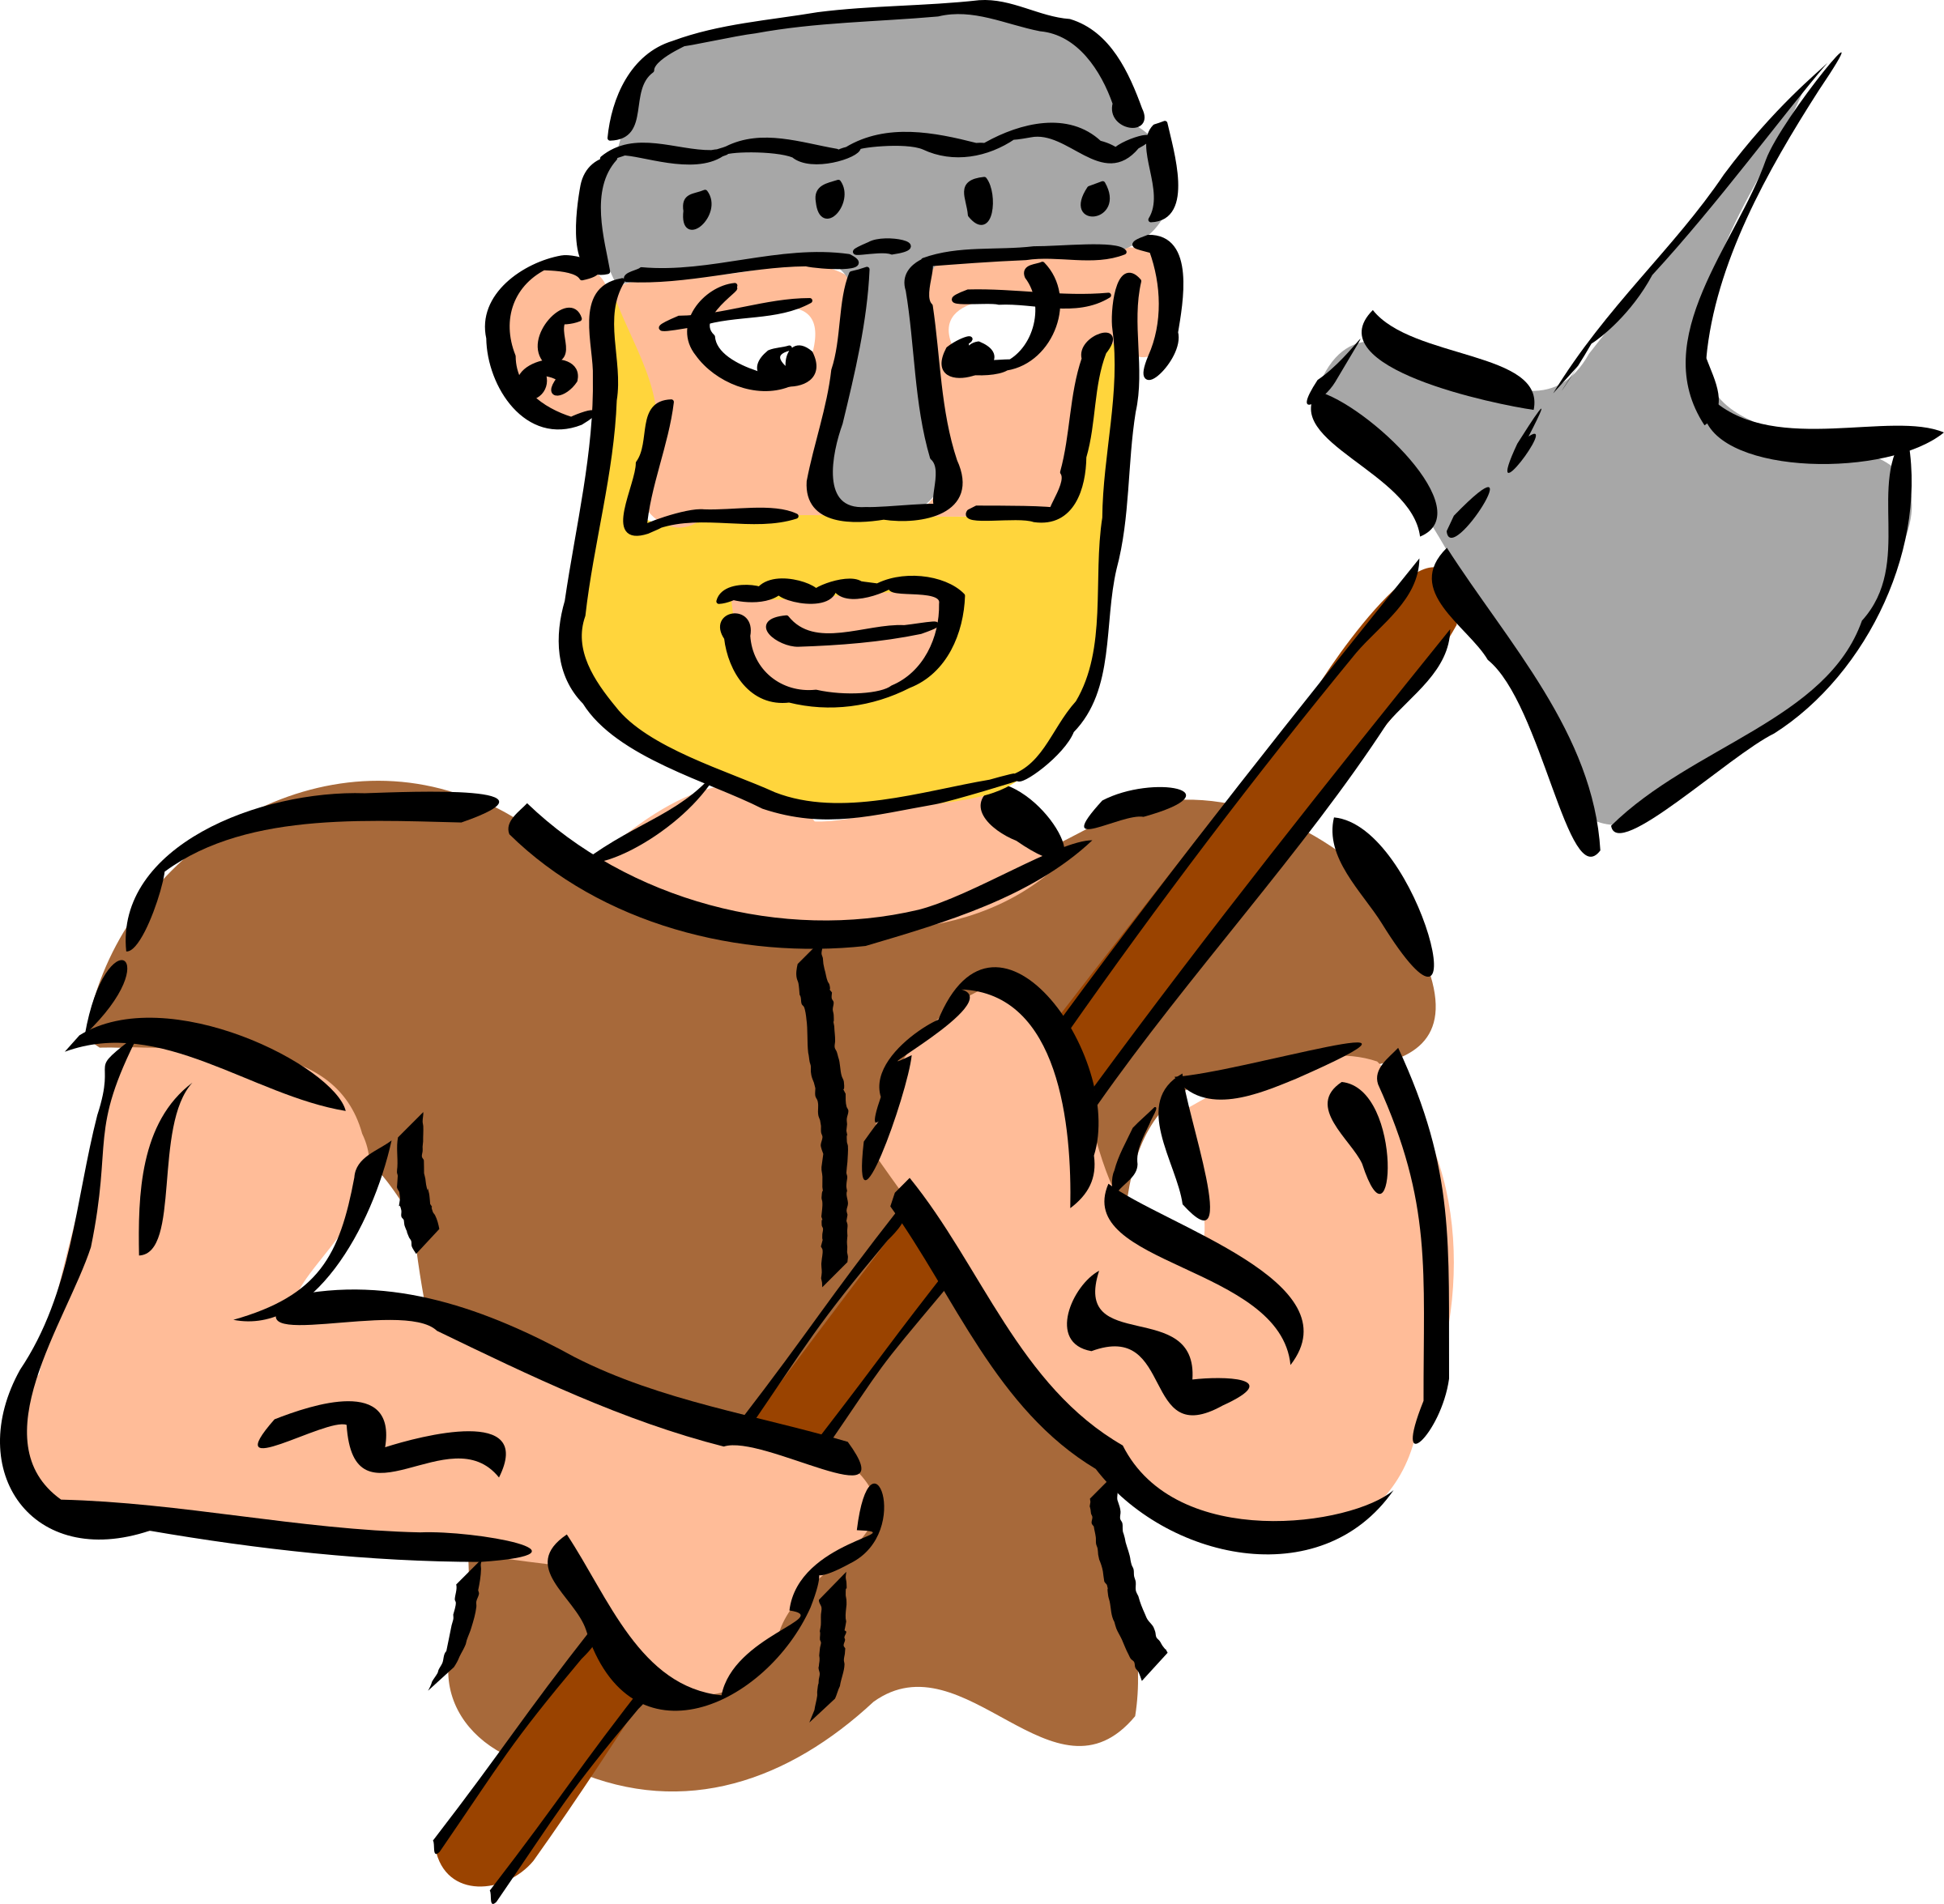 Soldier clipart comic. Big image png